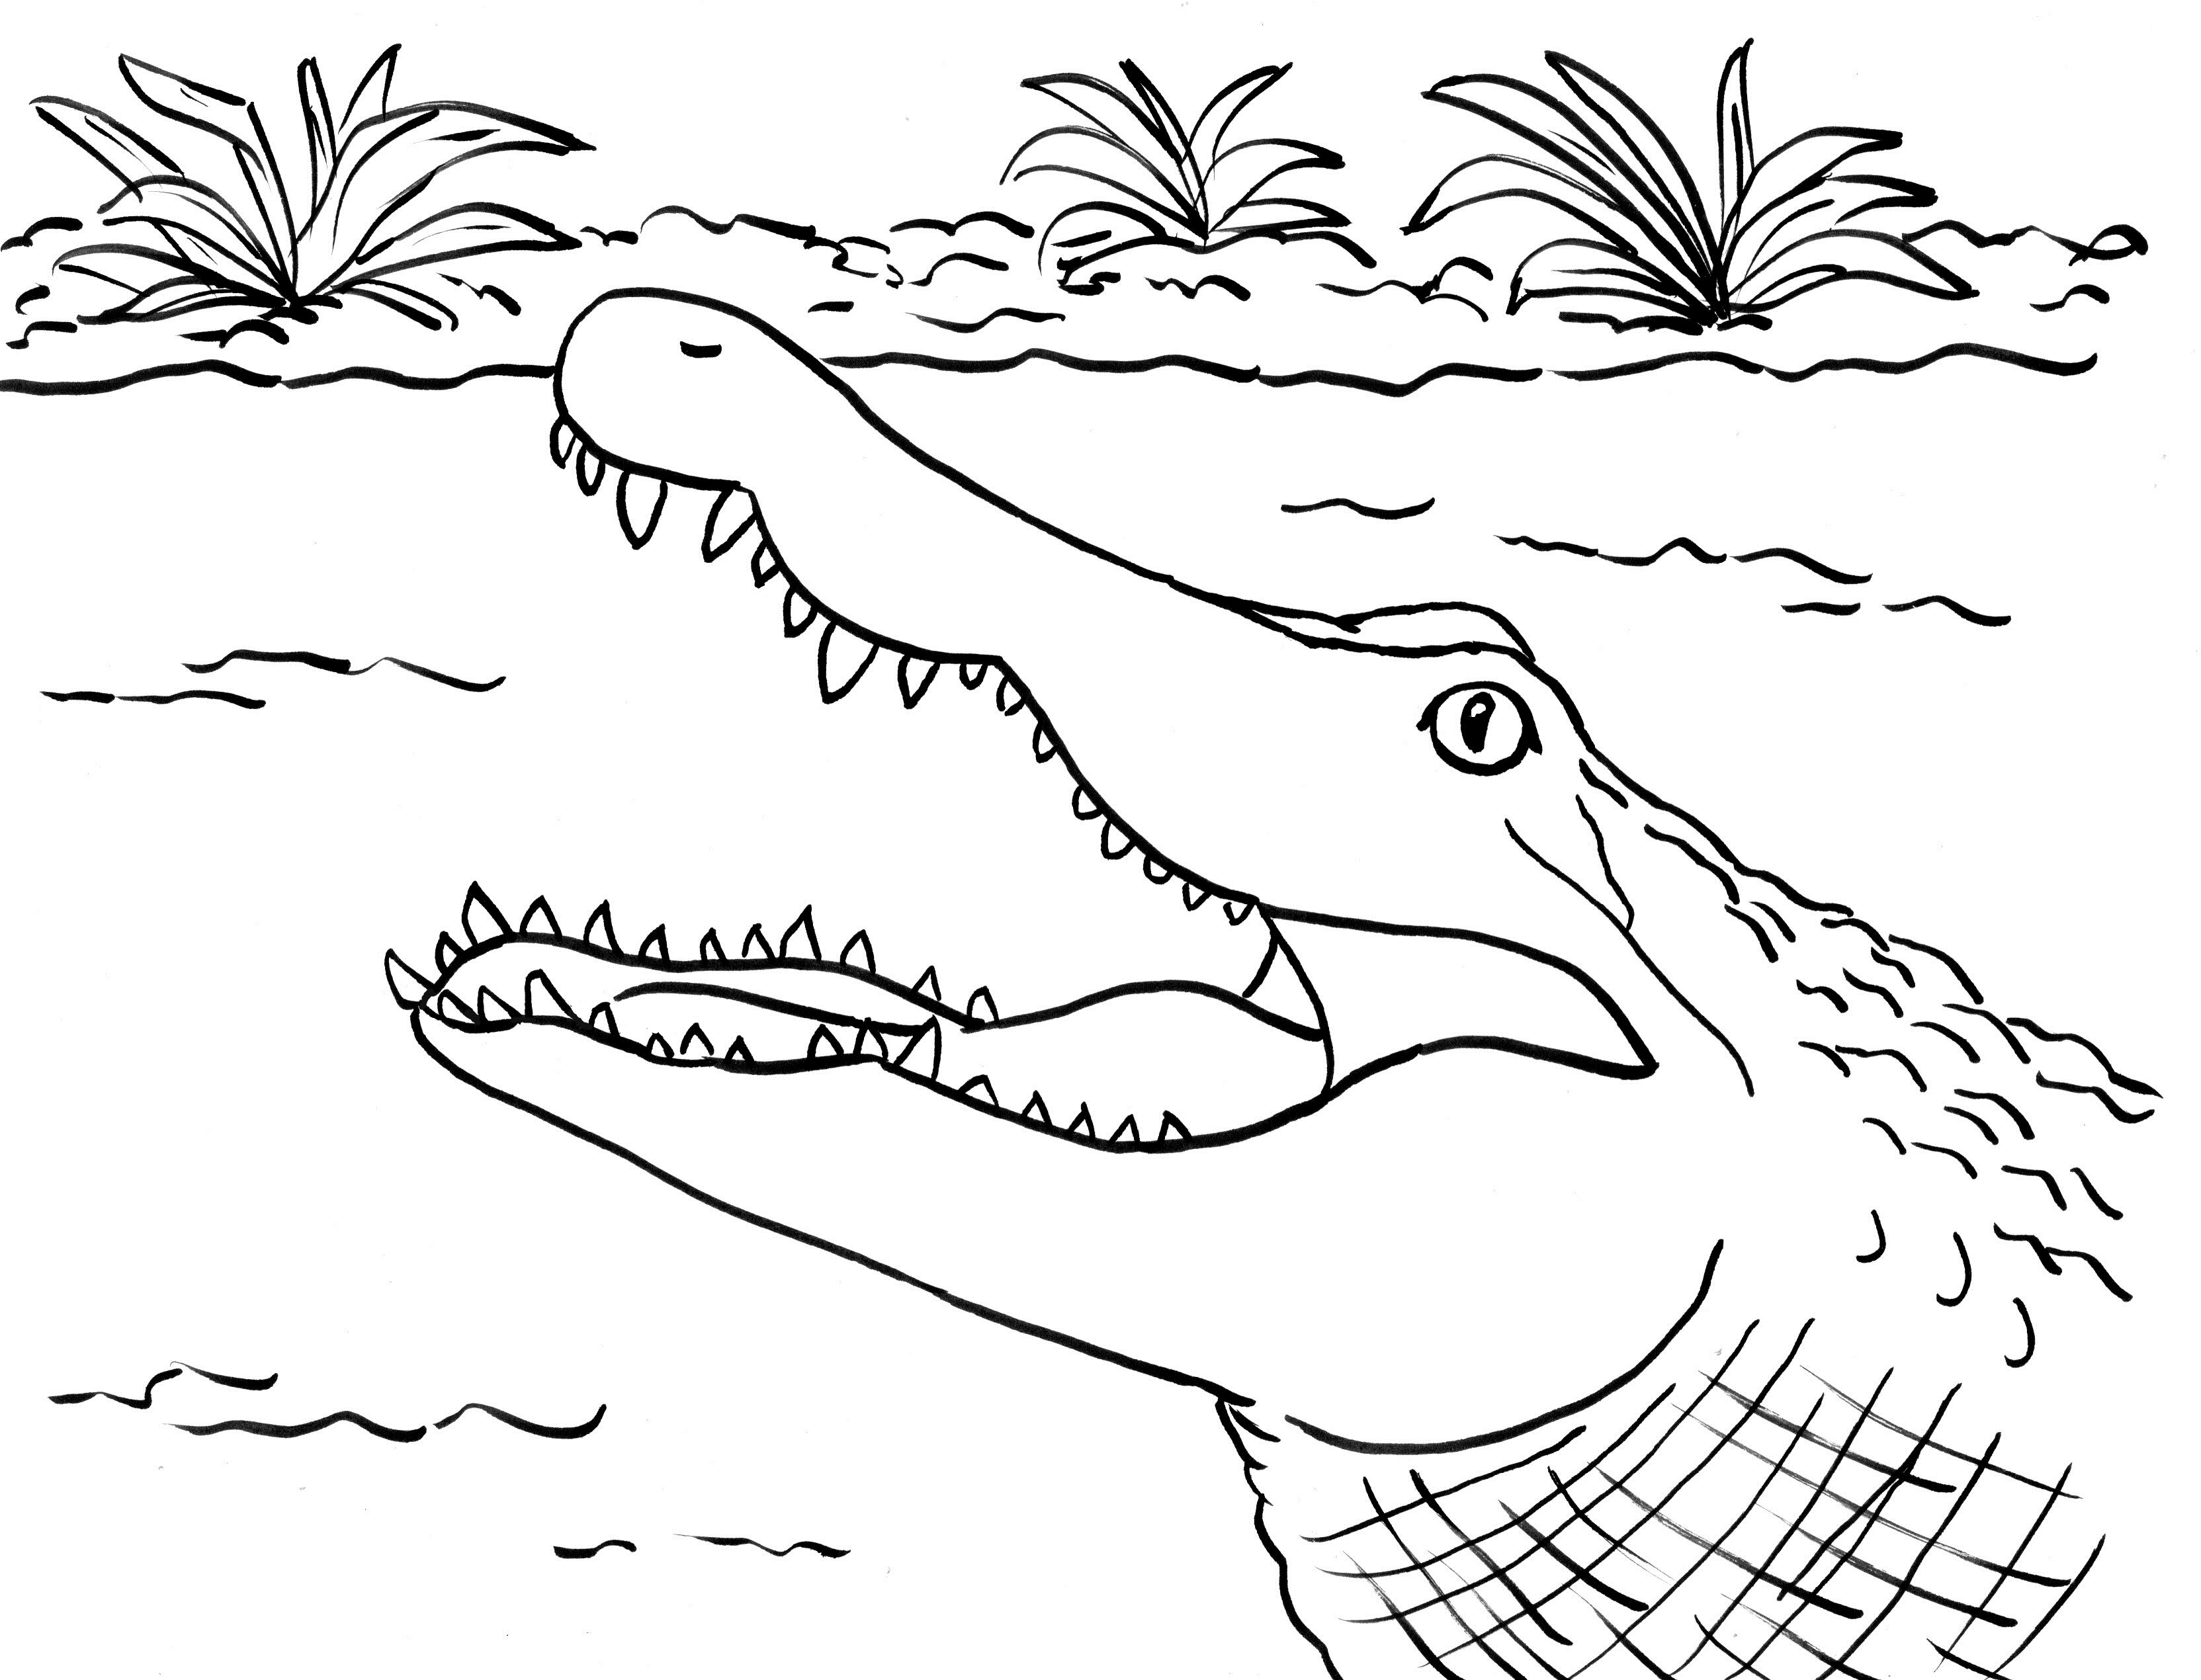 picture of a crocodile to colour free printable crocodile coloring pages for kids crocodile to picture a colour of